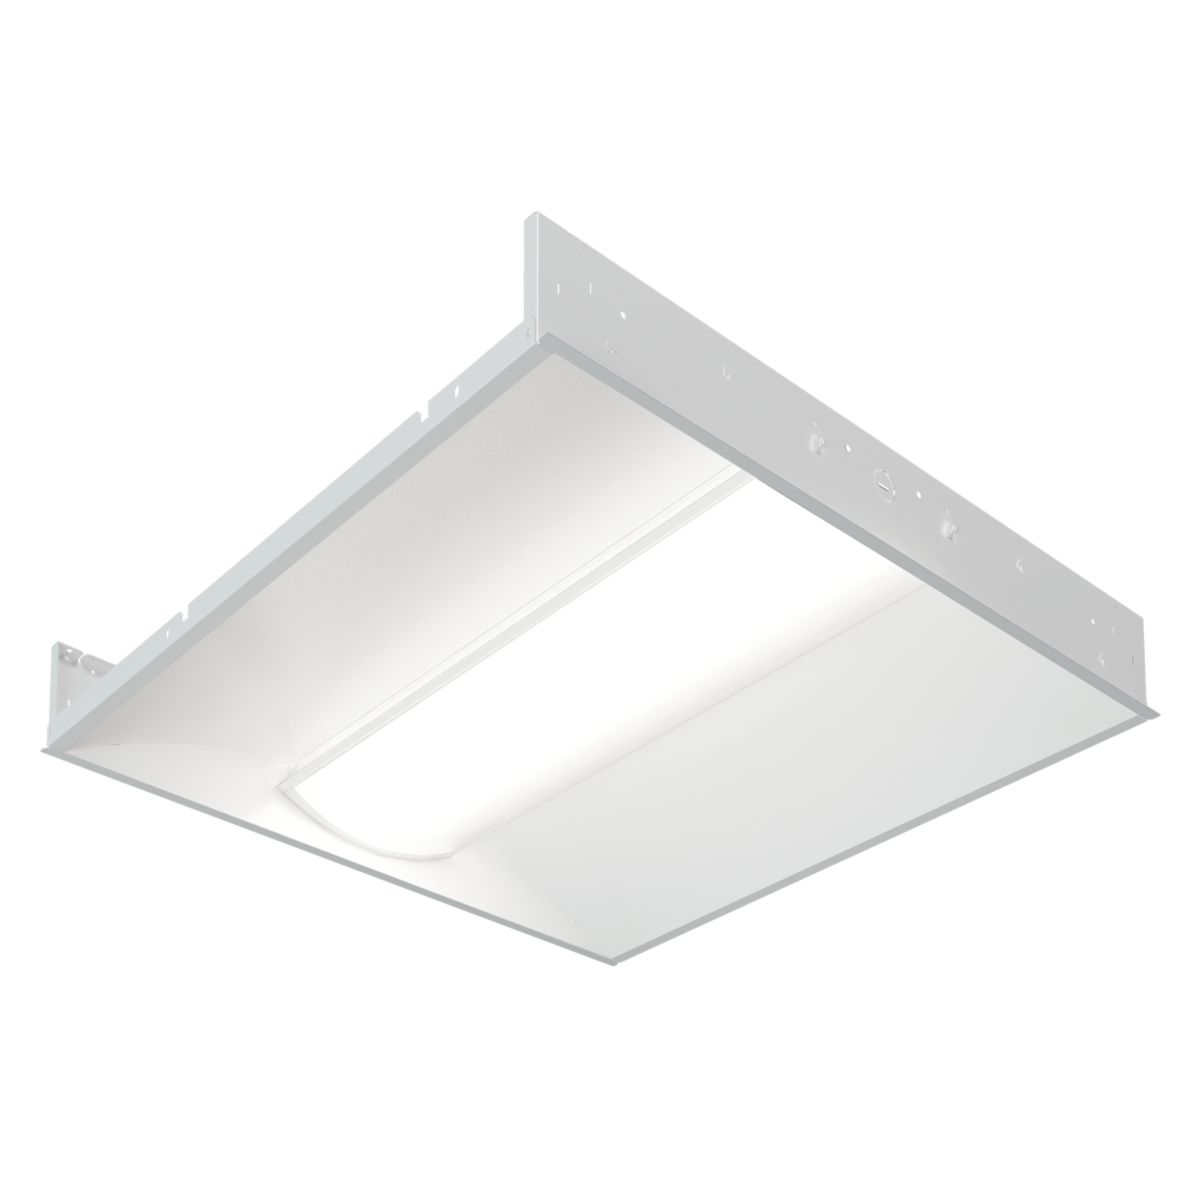 Class RX/ZX LED